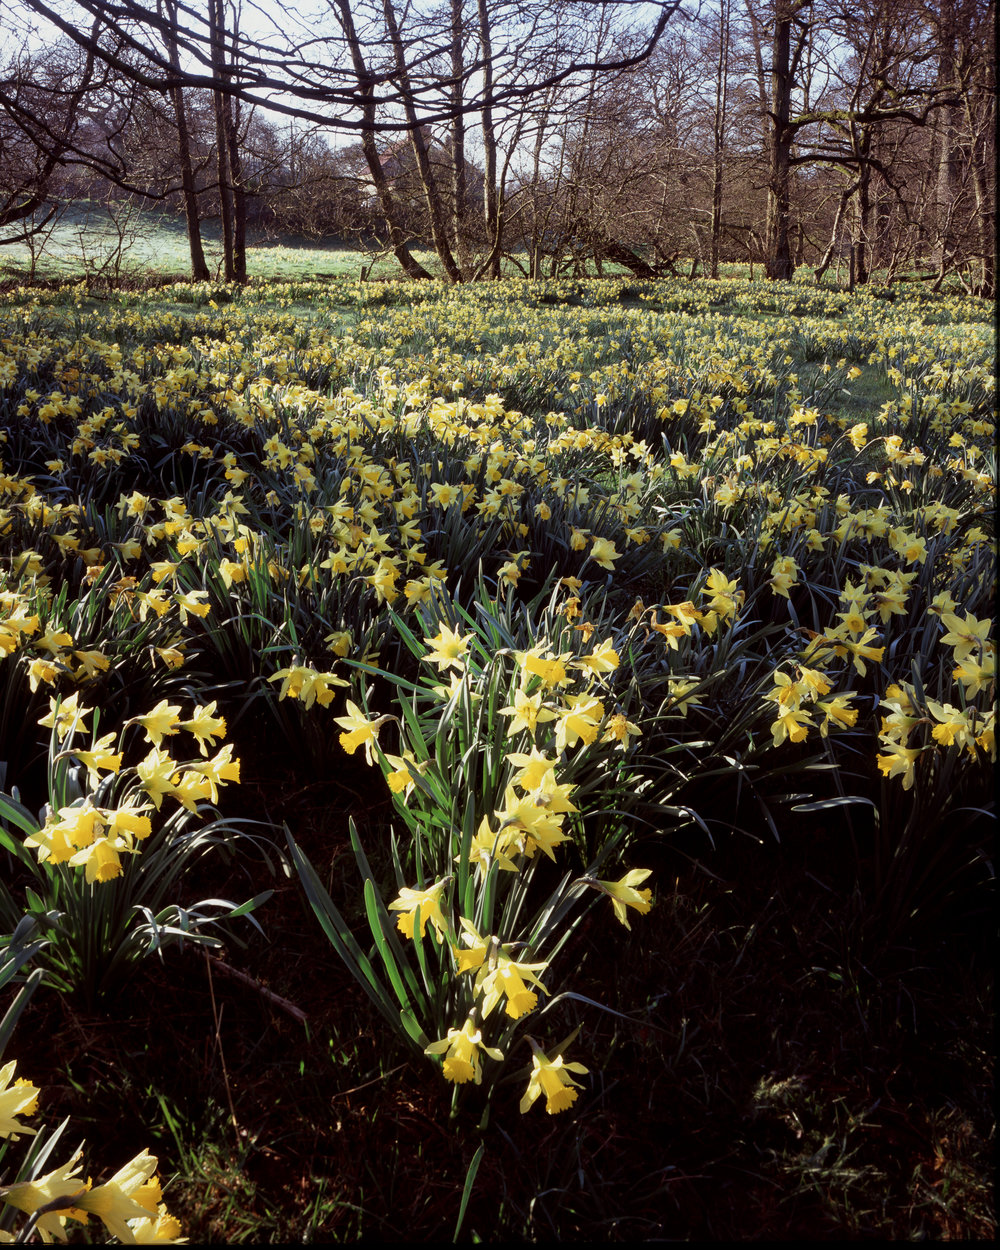 Carpet of Daffodils